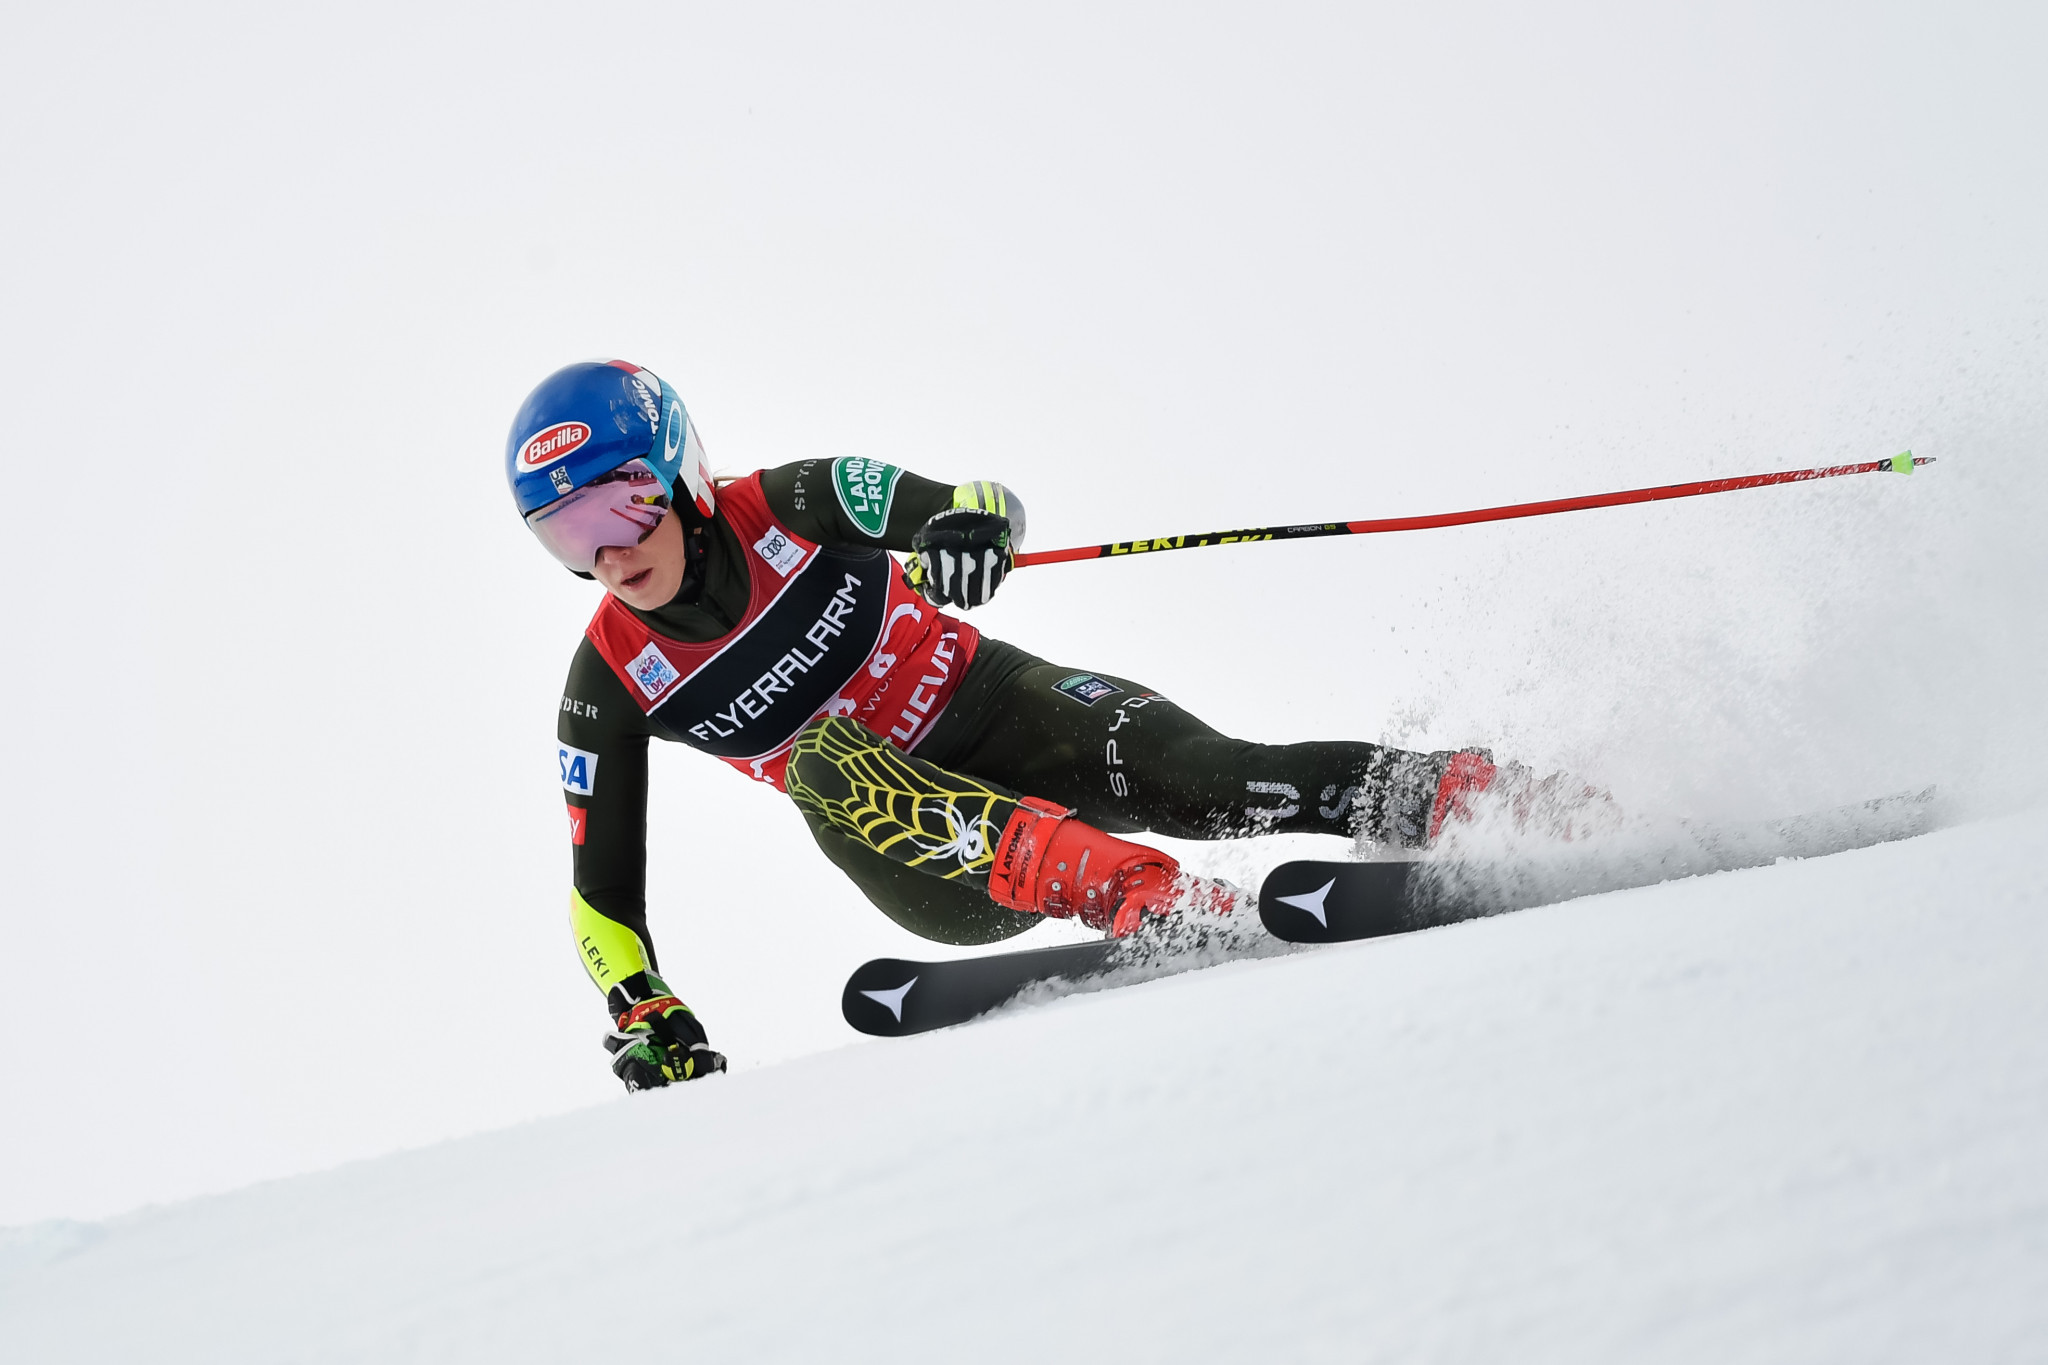 Shiffrin to sit out FIS Alpine Ski World Cup event in Val d'Isère